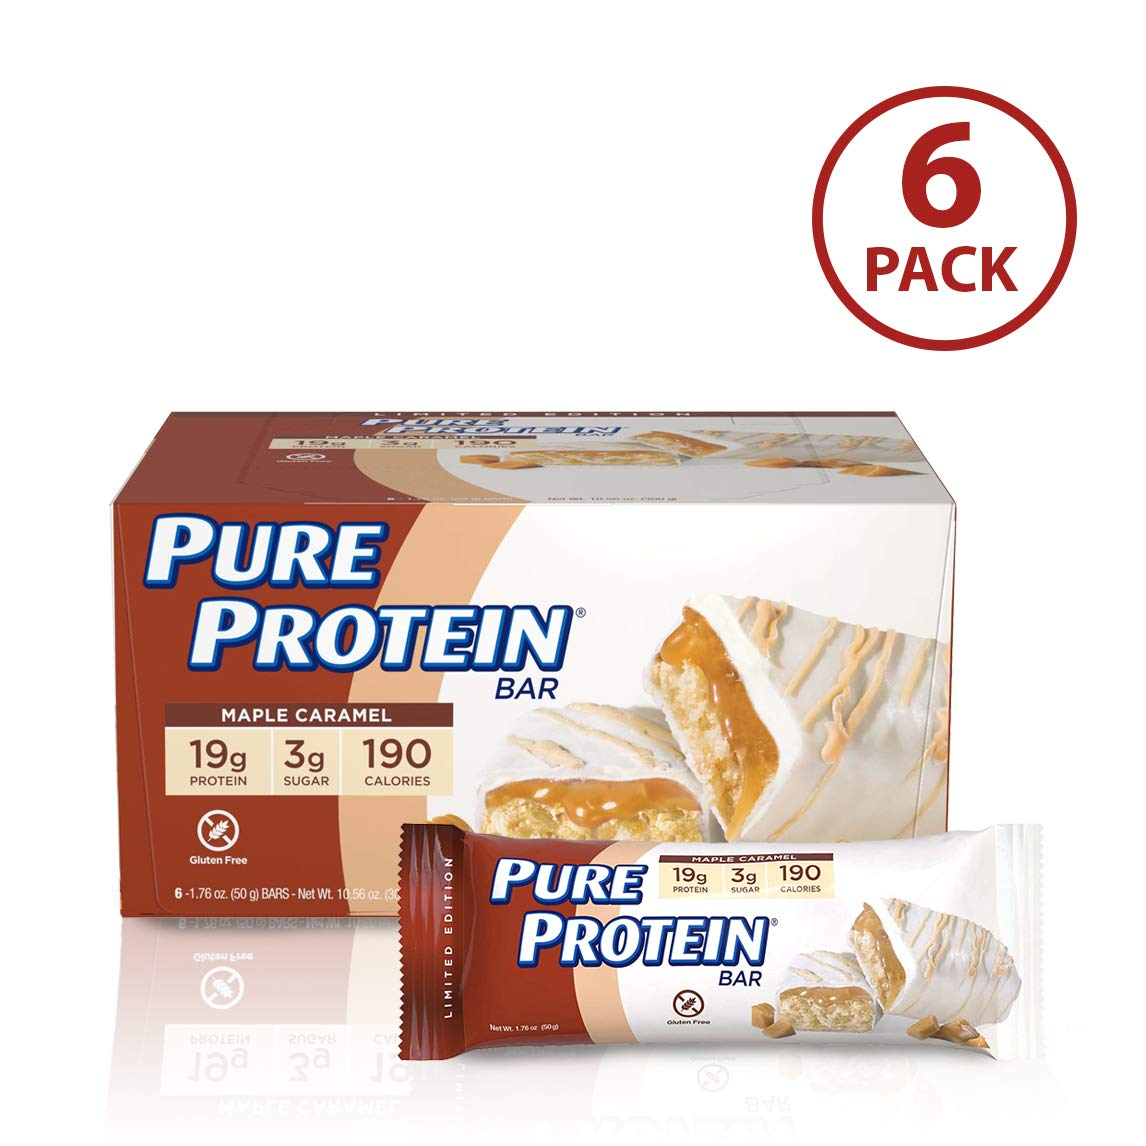 Pure Protein Bars, Gluten Free, Maple Caramel, 1.76 oz, 6 Count by Pure Protein